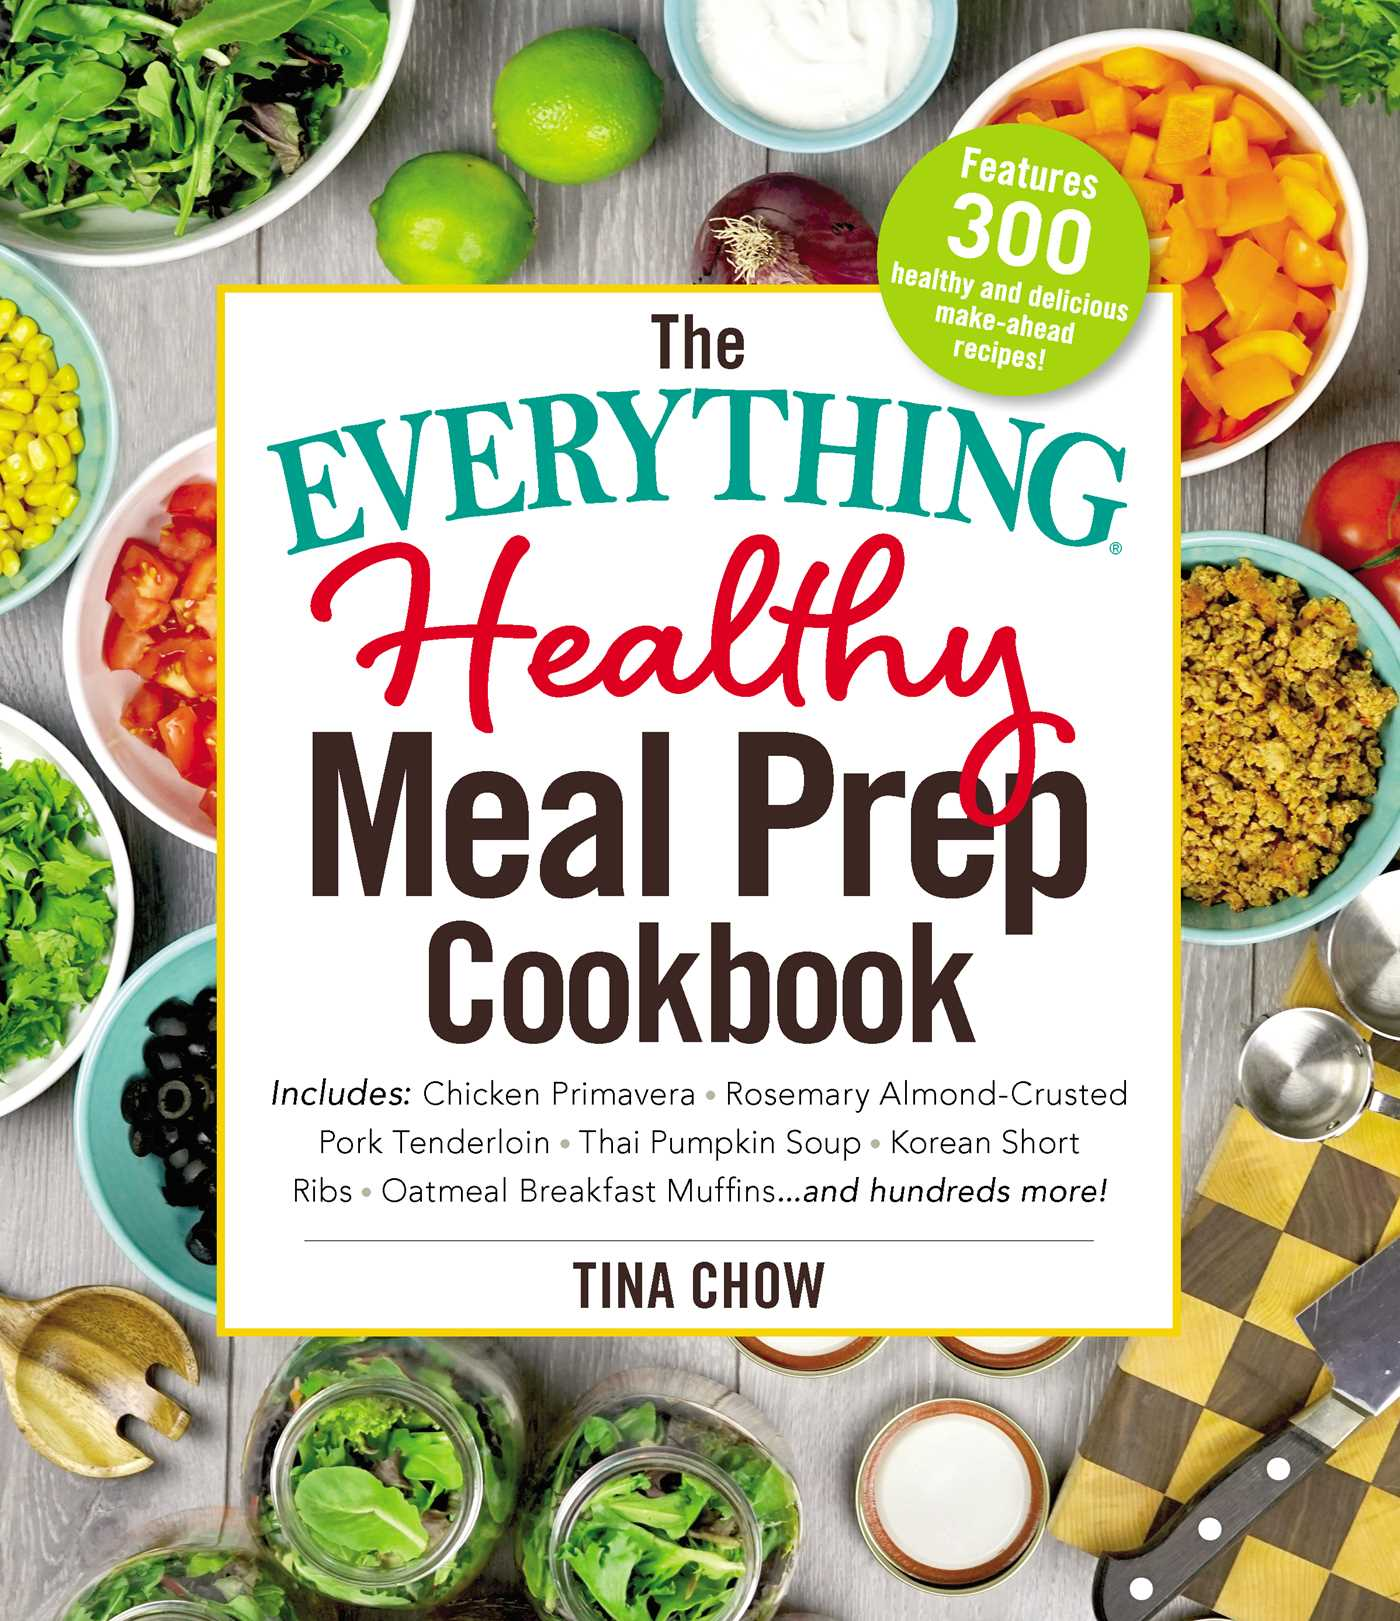 The everything healthy meal prep cookbook ebook by tina chow book cover image jpg the everything healthy meal prep cookbook forumfinder Images